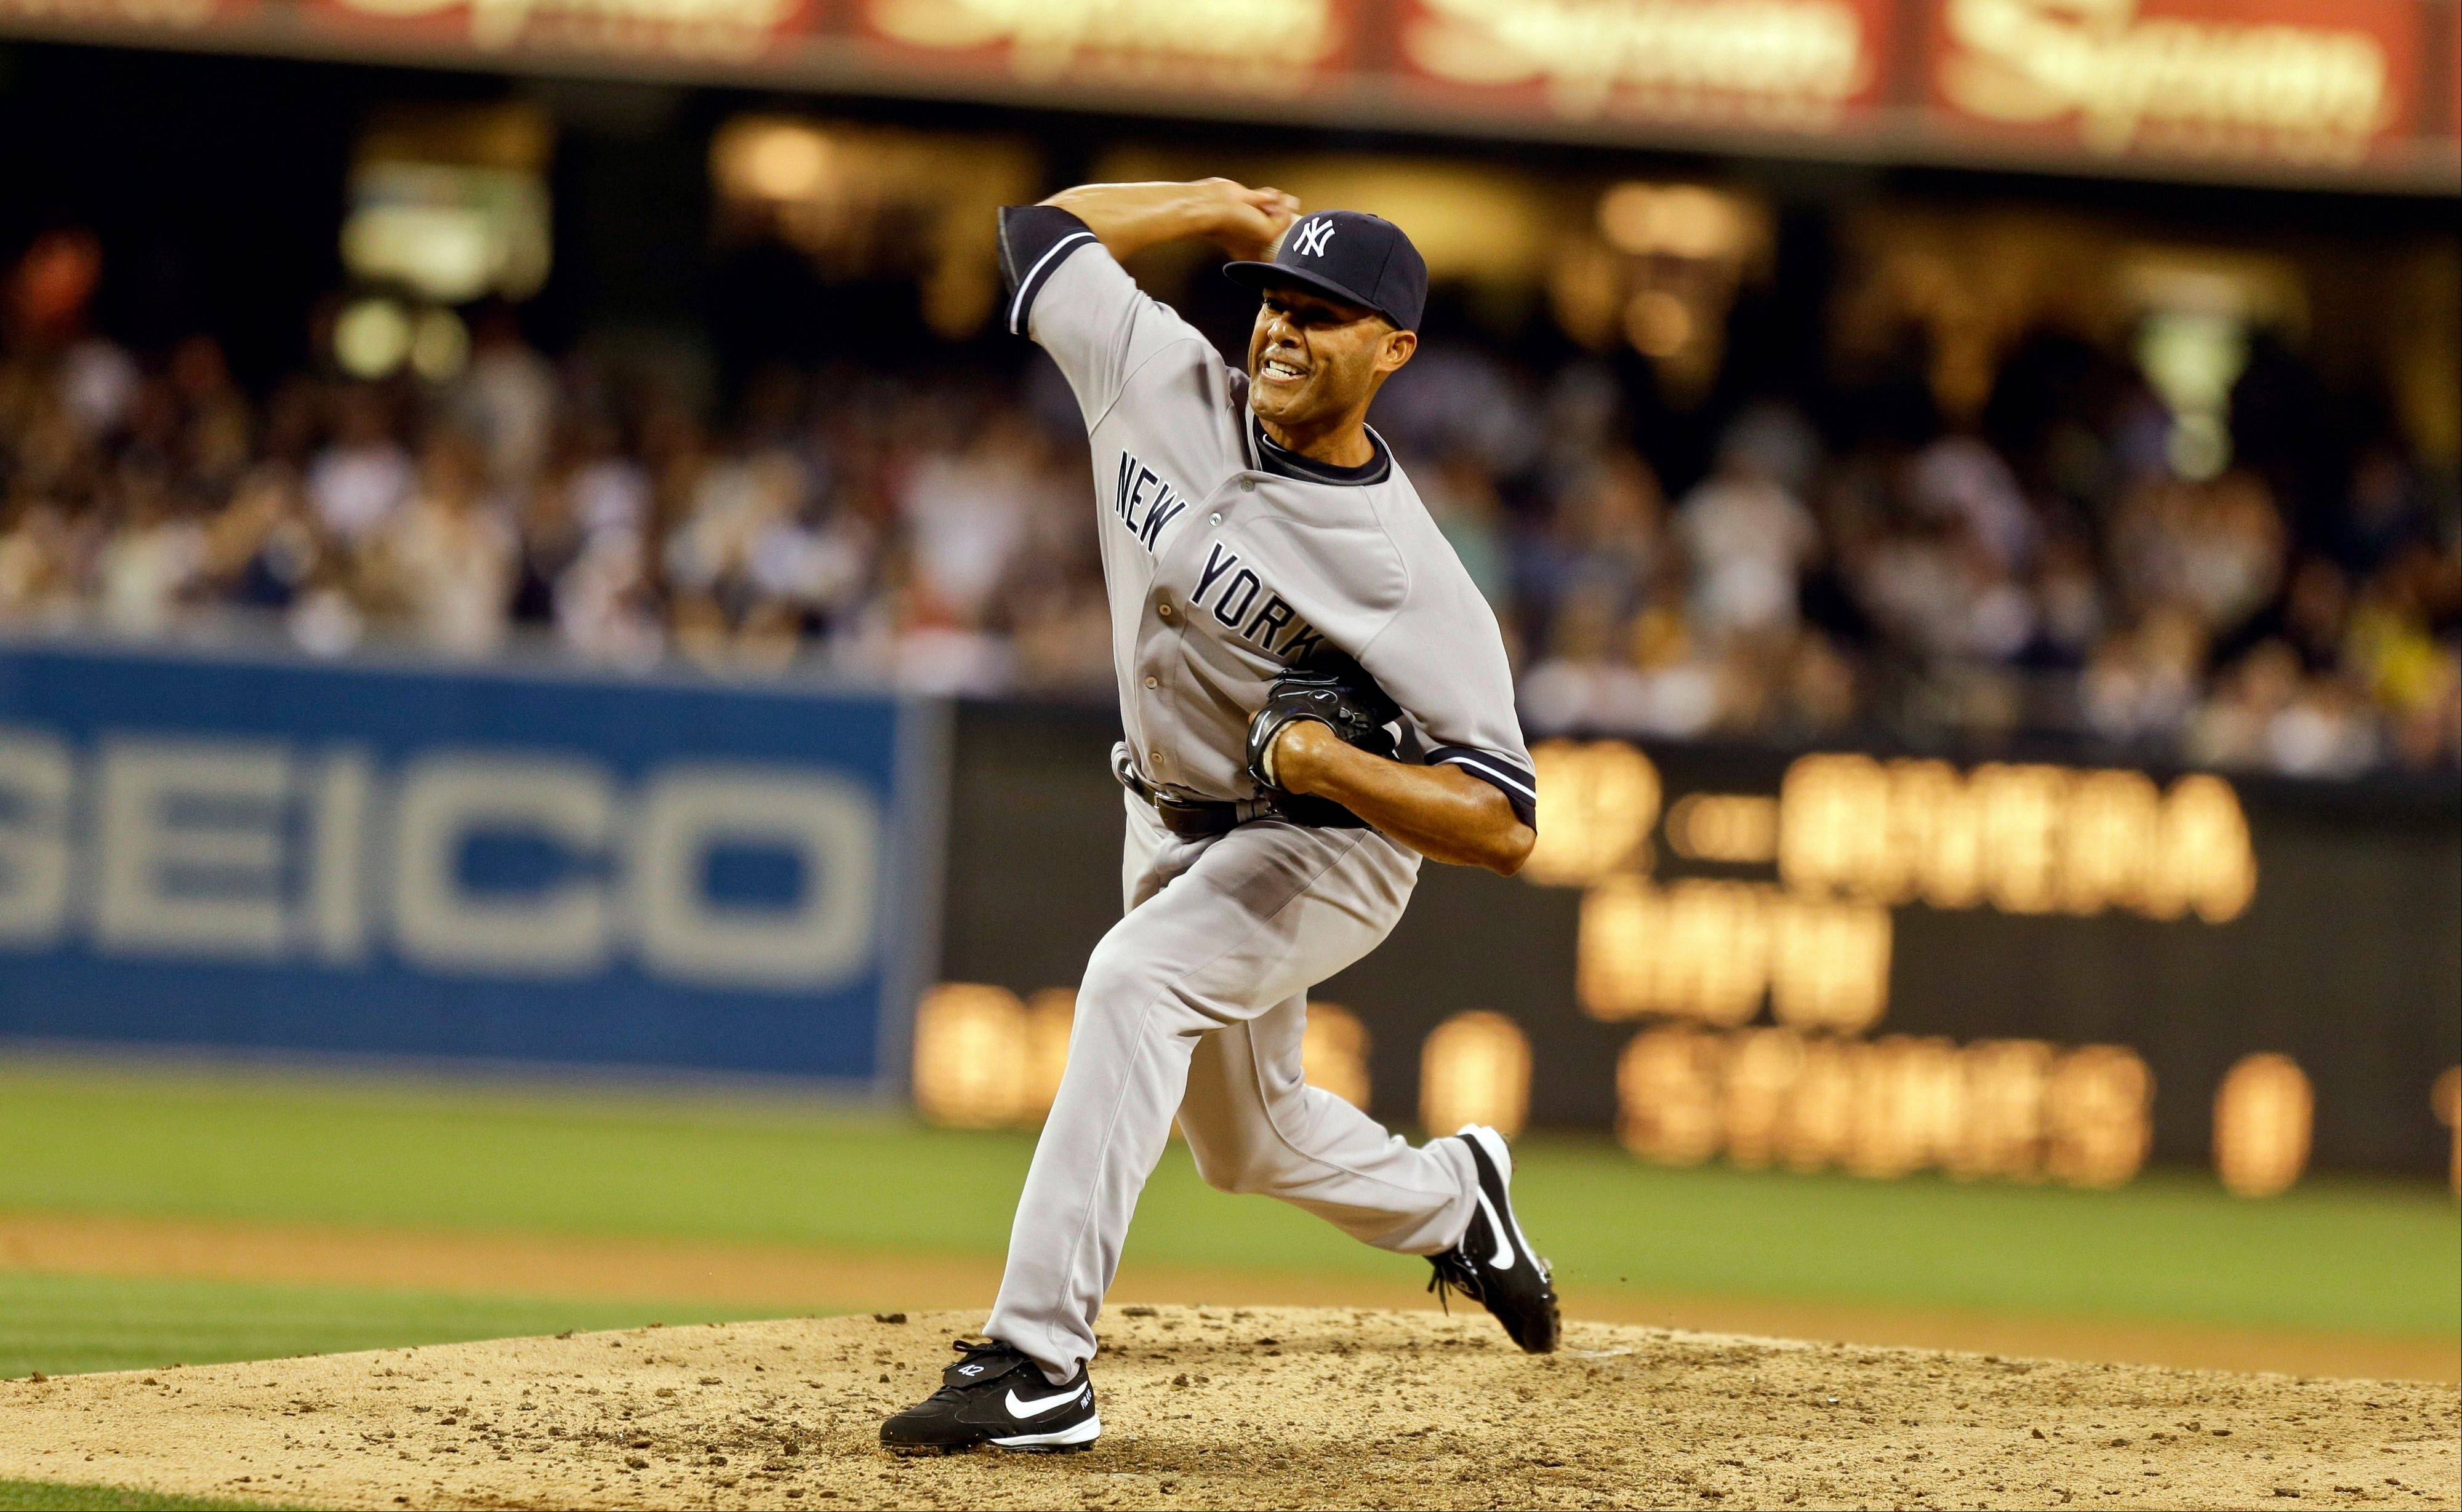 New York Yankees closer Mariano Rivera is making his final visit to U.S. Cellular Field. He has not pitched in the first two games against the White Sox.